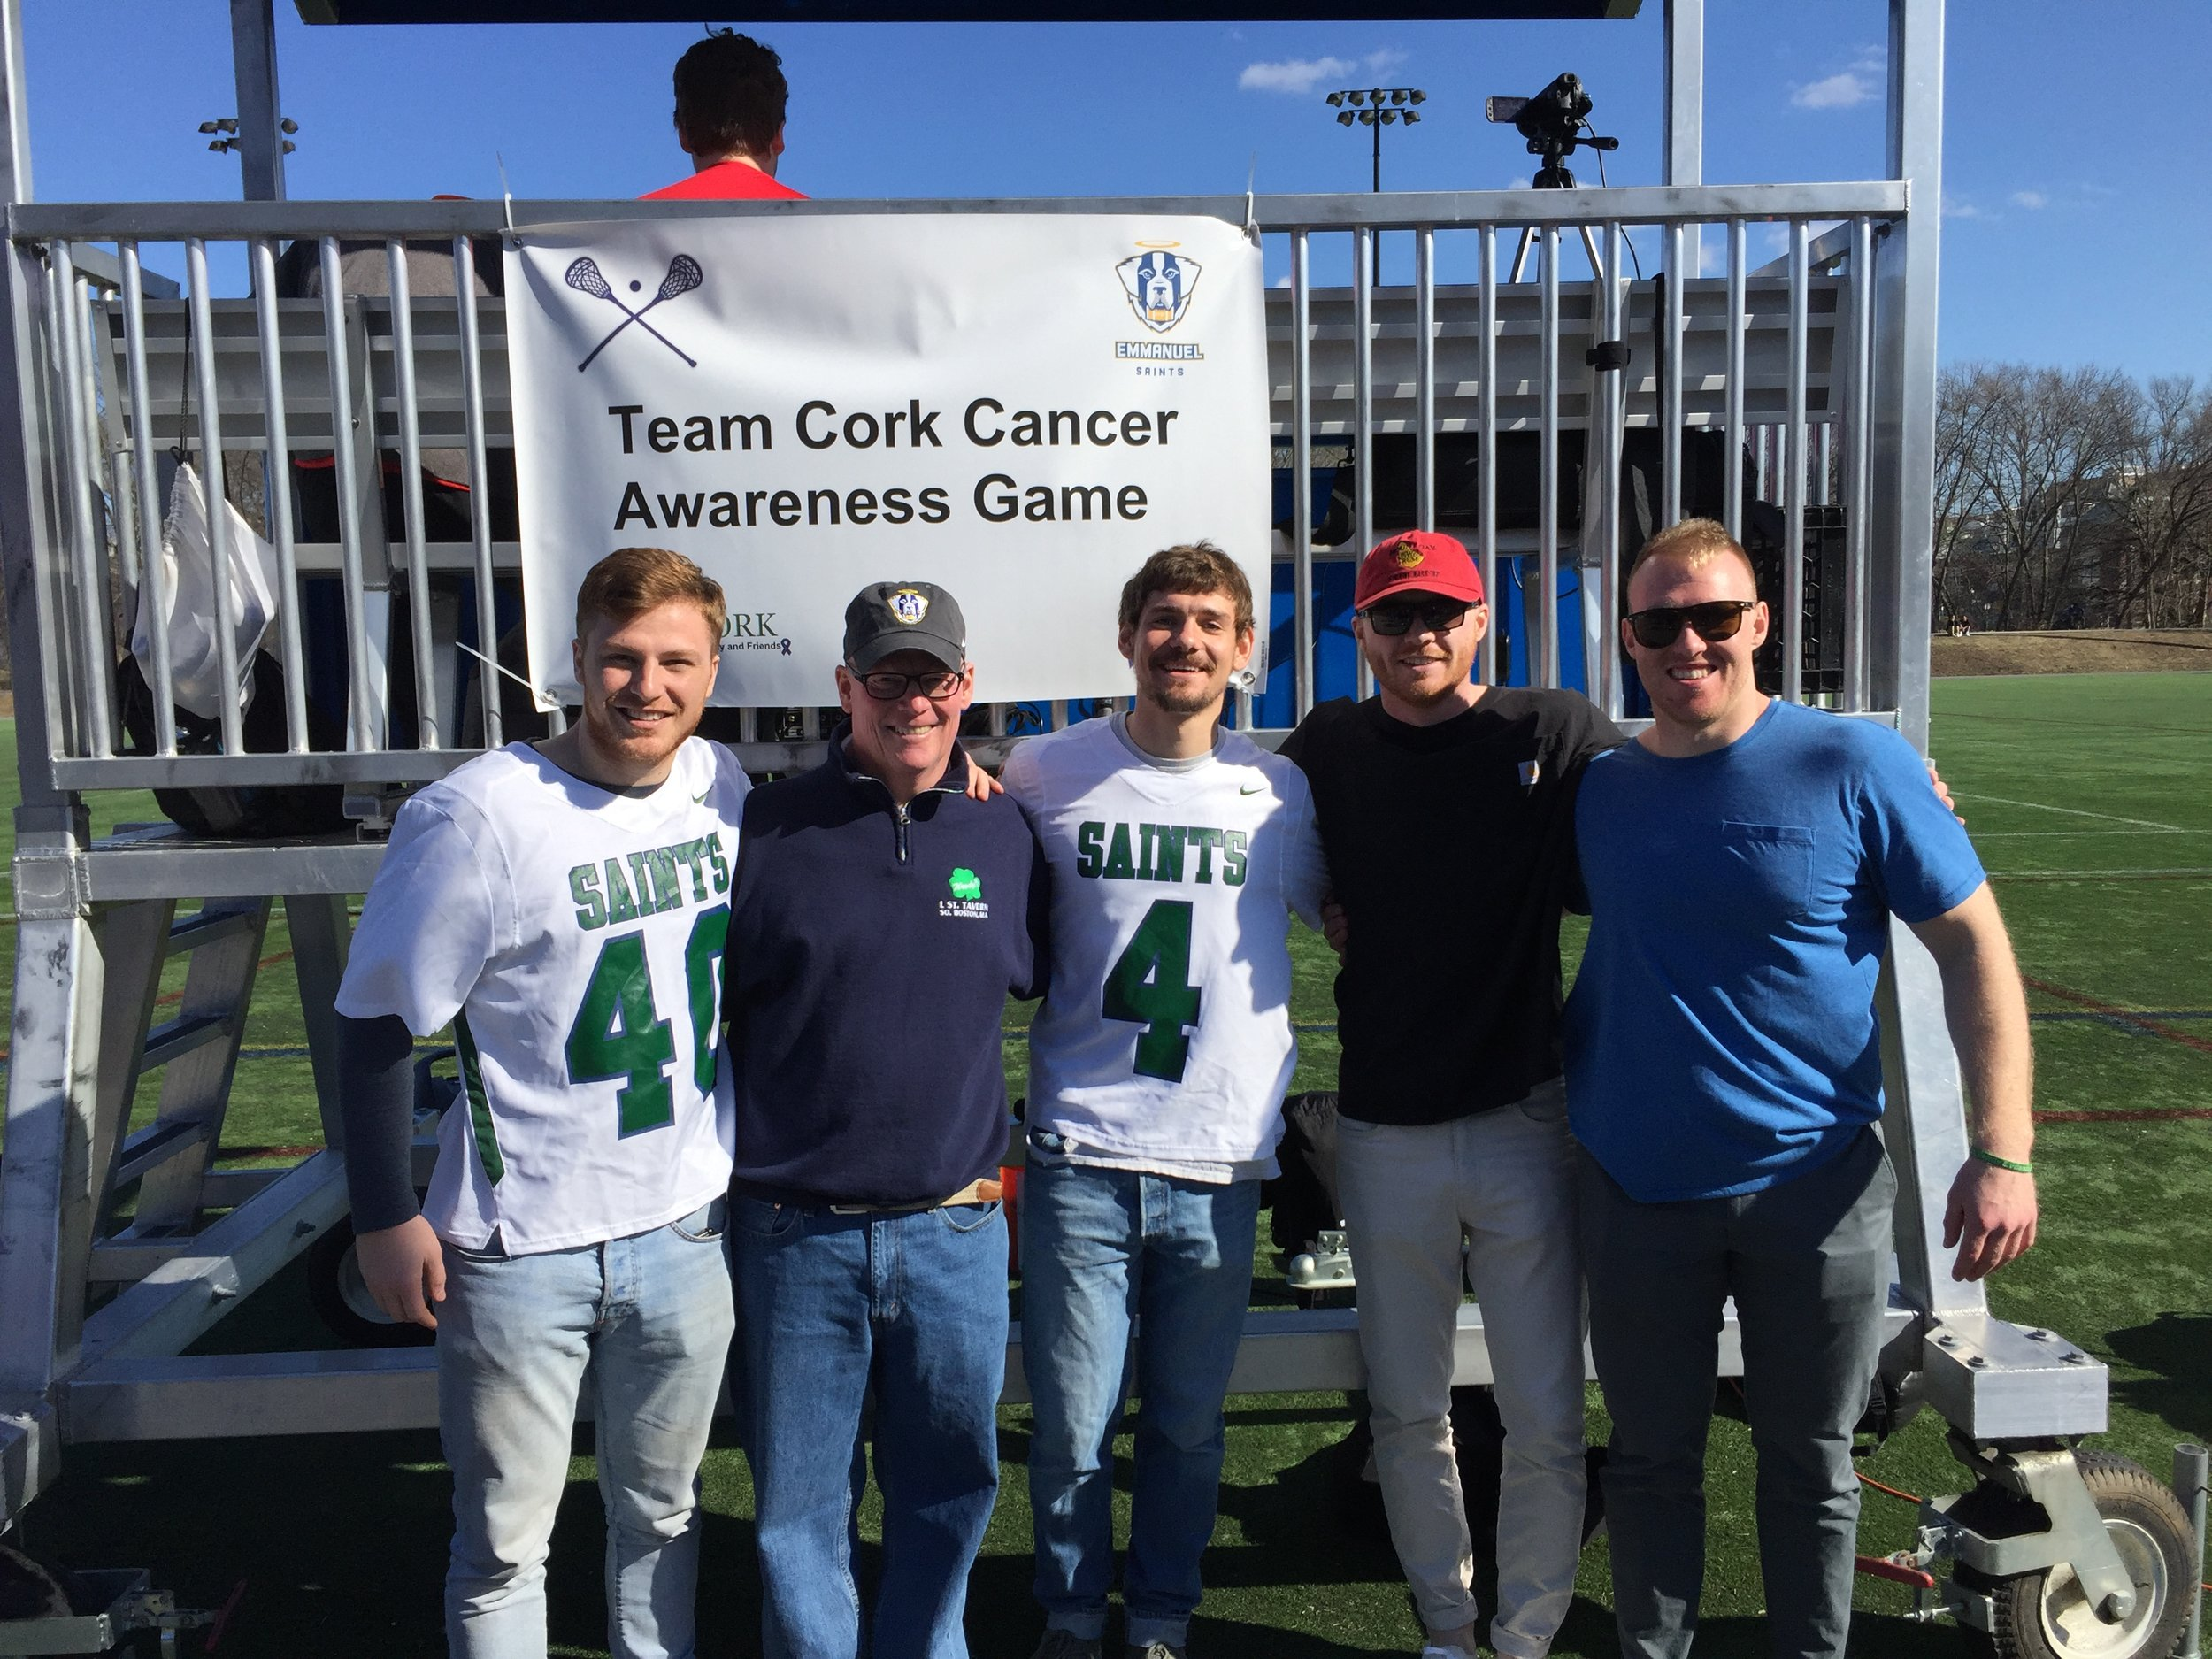 Honorary Captains and Cancer Survivors Jake Picket and Joel Berger